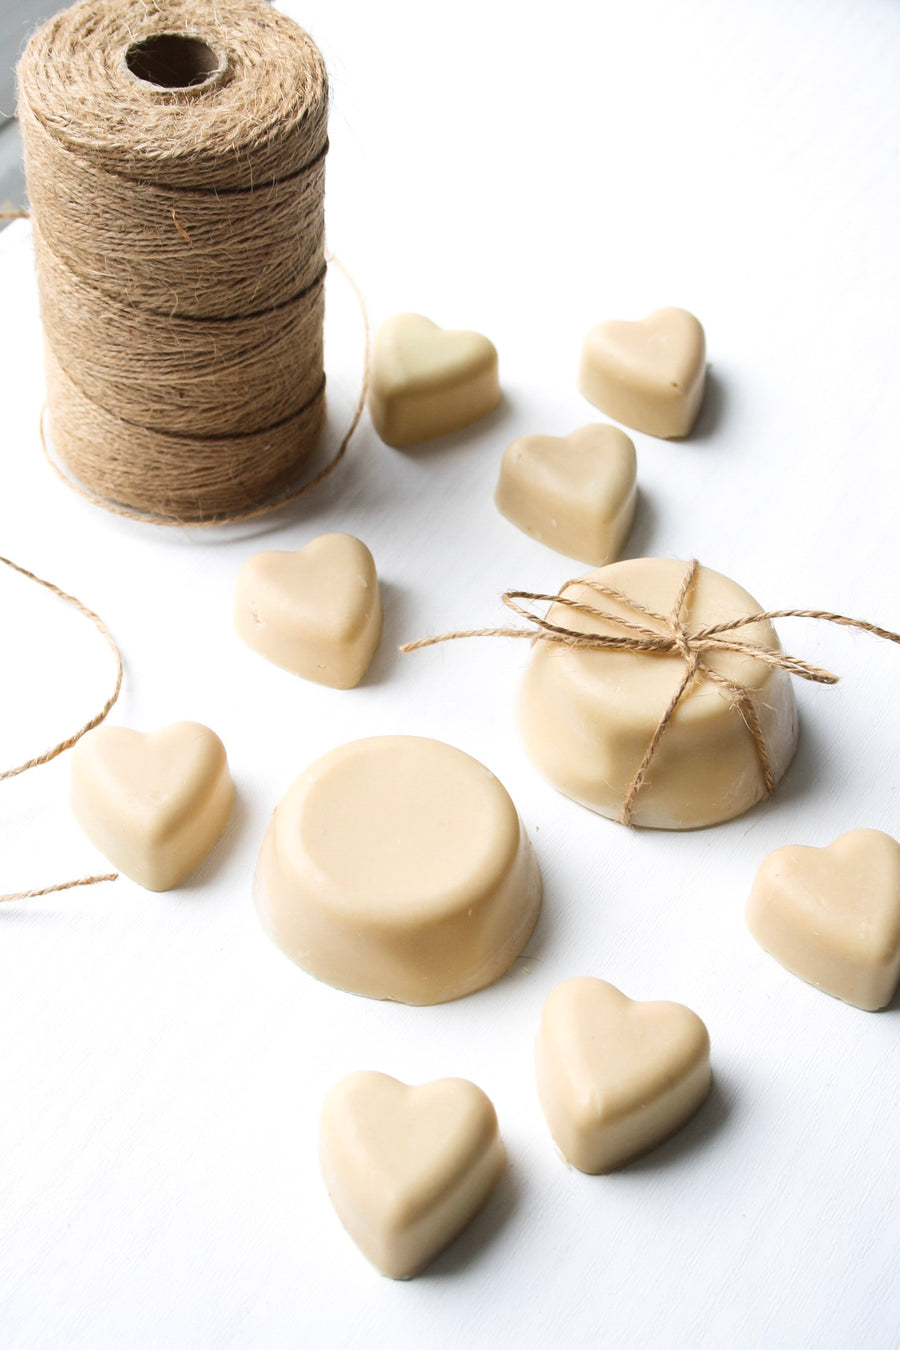 Soap Making for Beginners Workshop - 15 February 2020